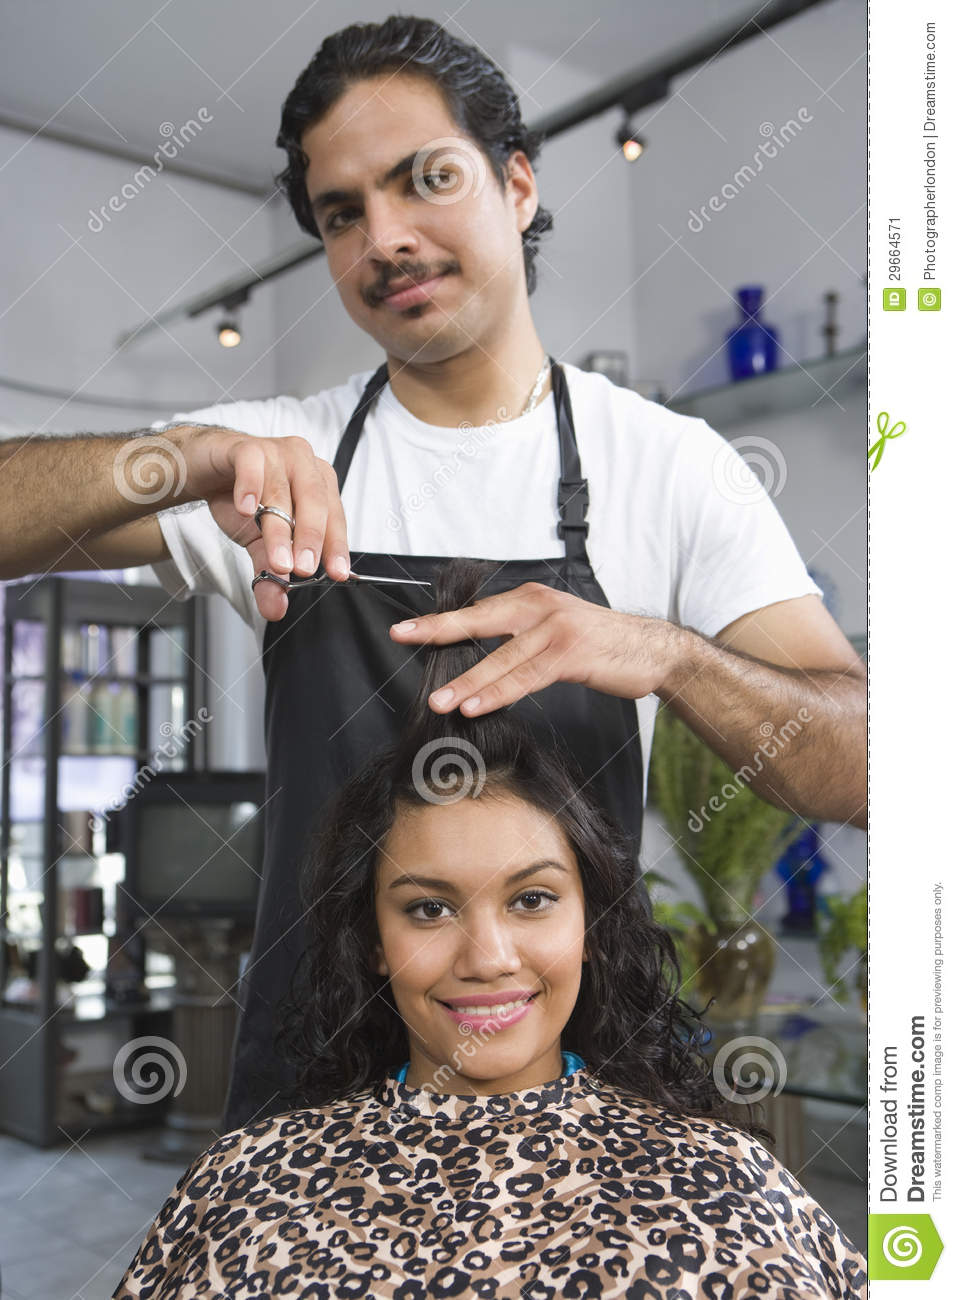 Barber Cutting Woman S Hair Stock Image - Image of sitting, people